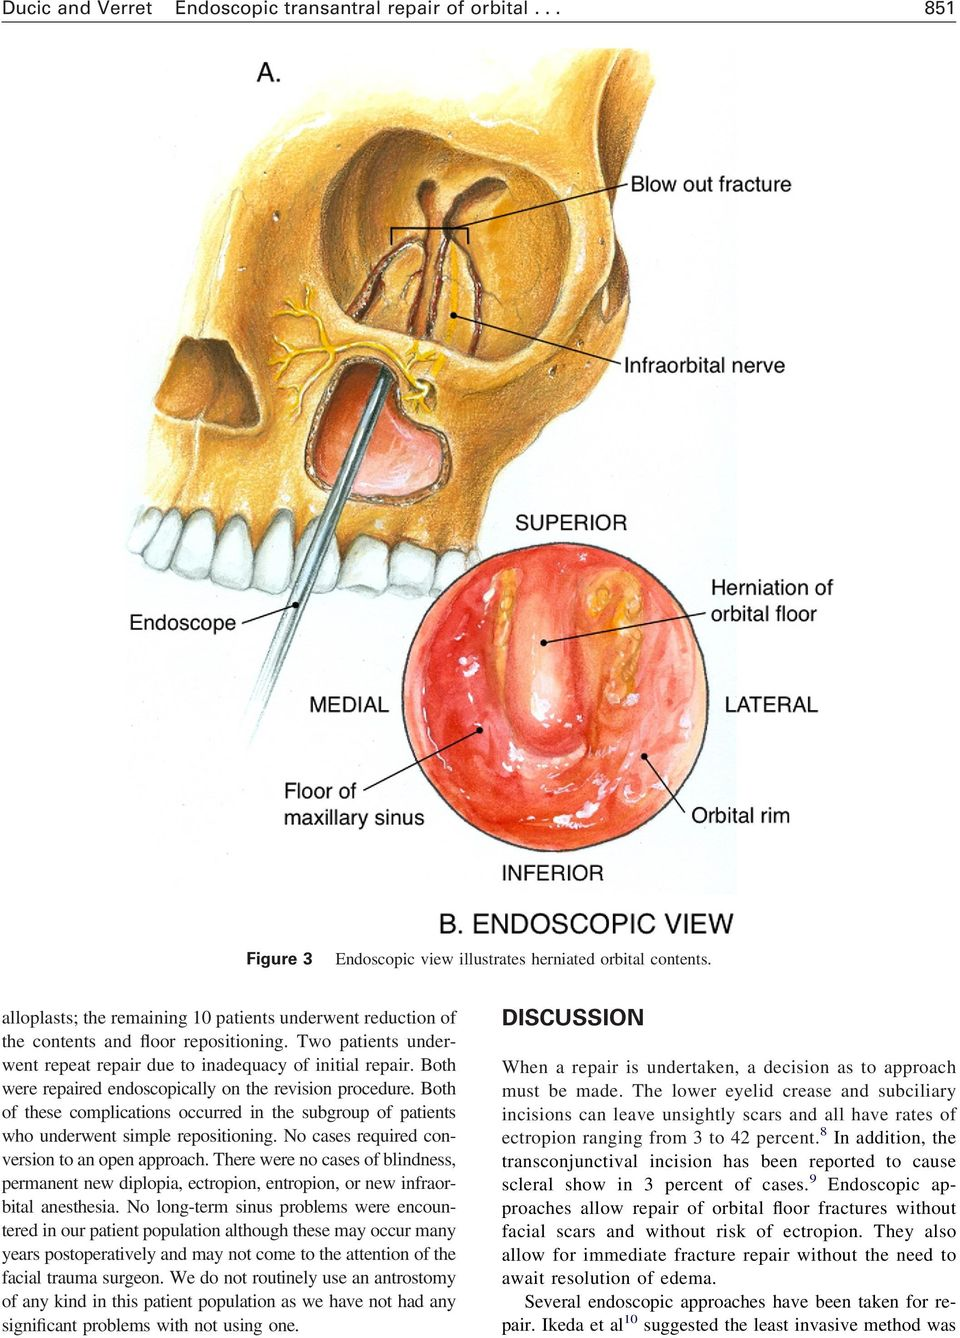 Both were repaired endoscopically on the revision procedure. Both of these complications occurred in the subgroup of patients who underwent simple repositioning.